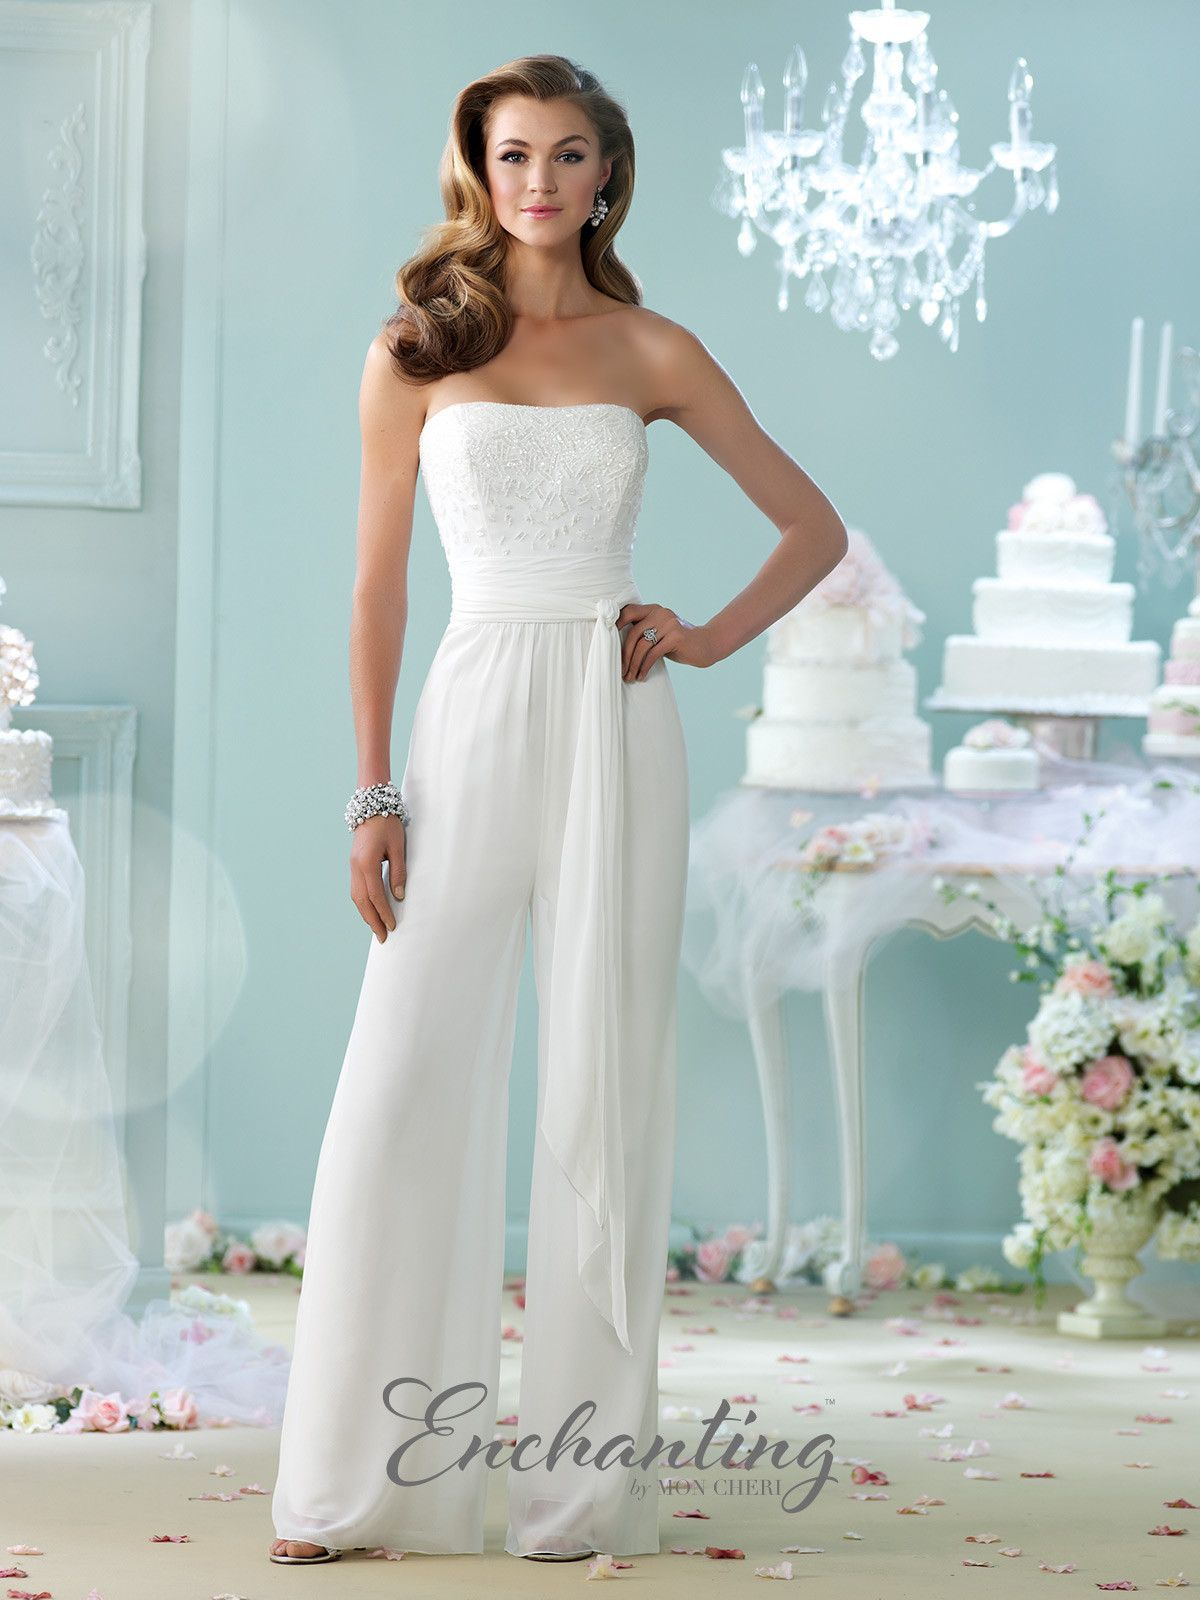 Enchanting - 215103 - All Dressed Up, Bridal Gown | Enchanted ...